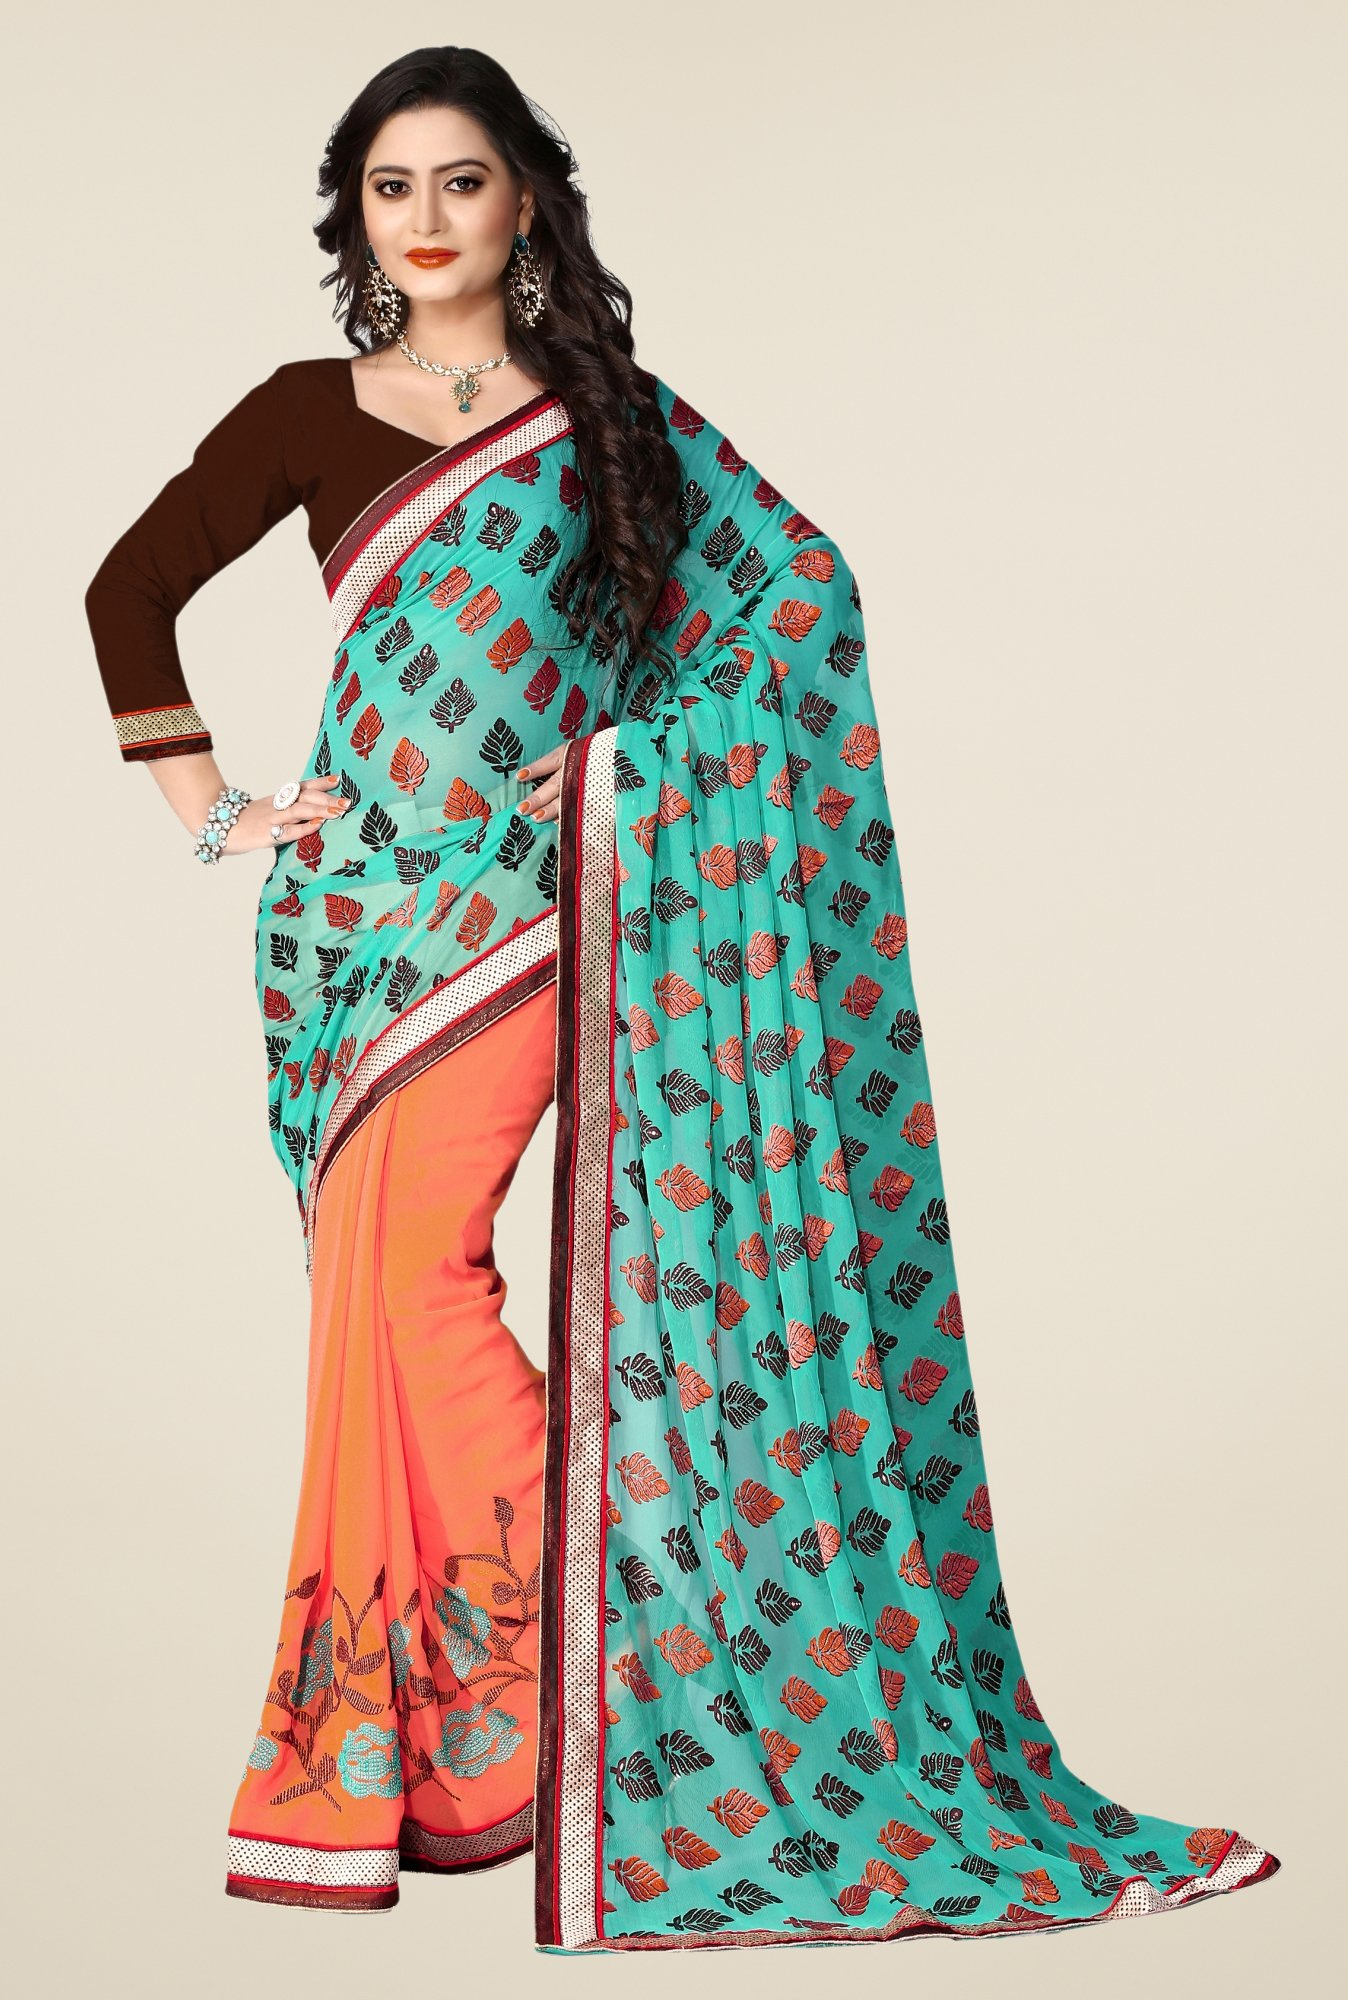 Triveni Peach Embroidered Jacquard Georgette Saree